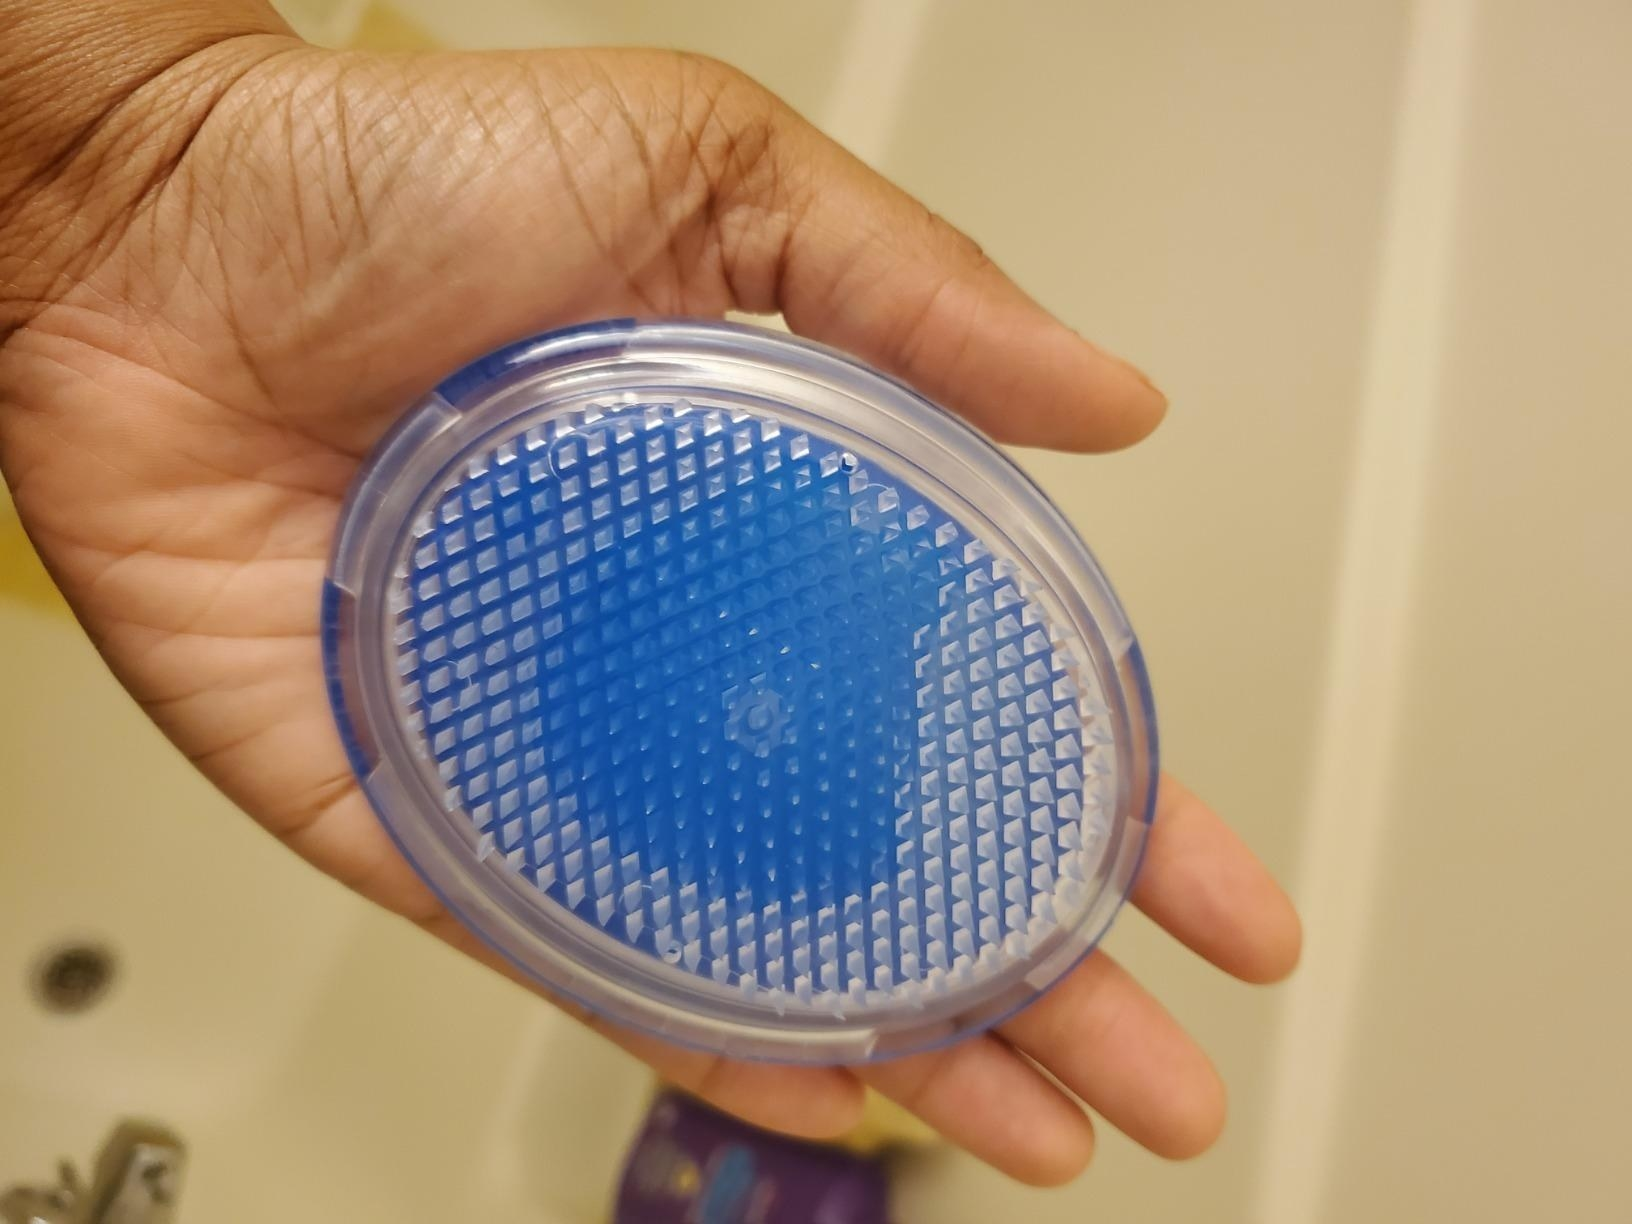 A reviewer holding the ergonomic brush with hard-ish silicone bristles